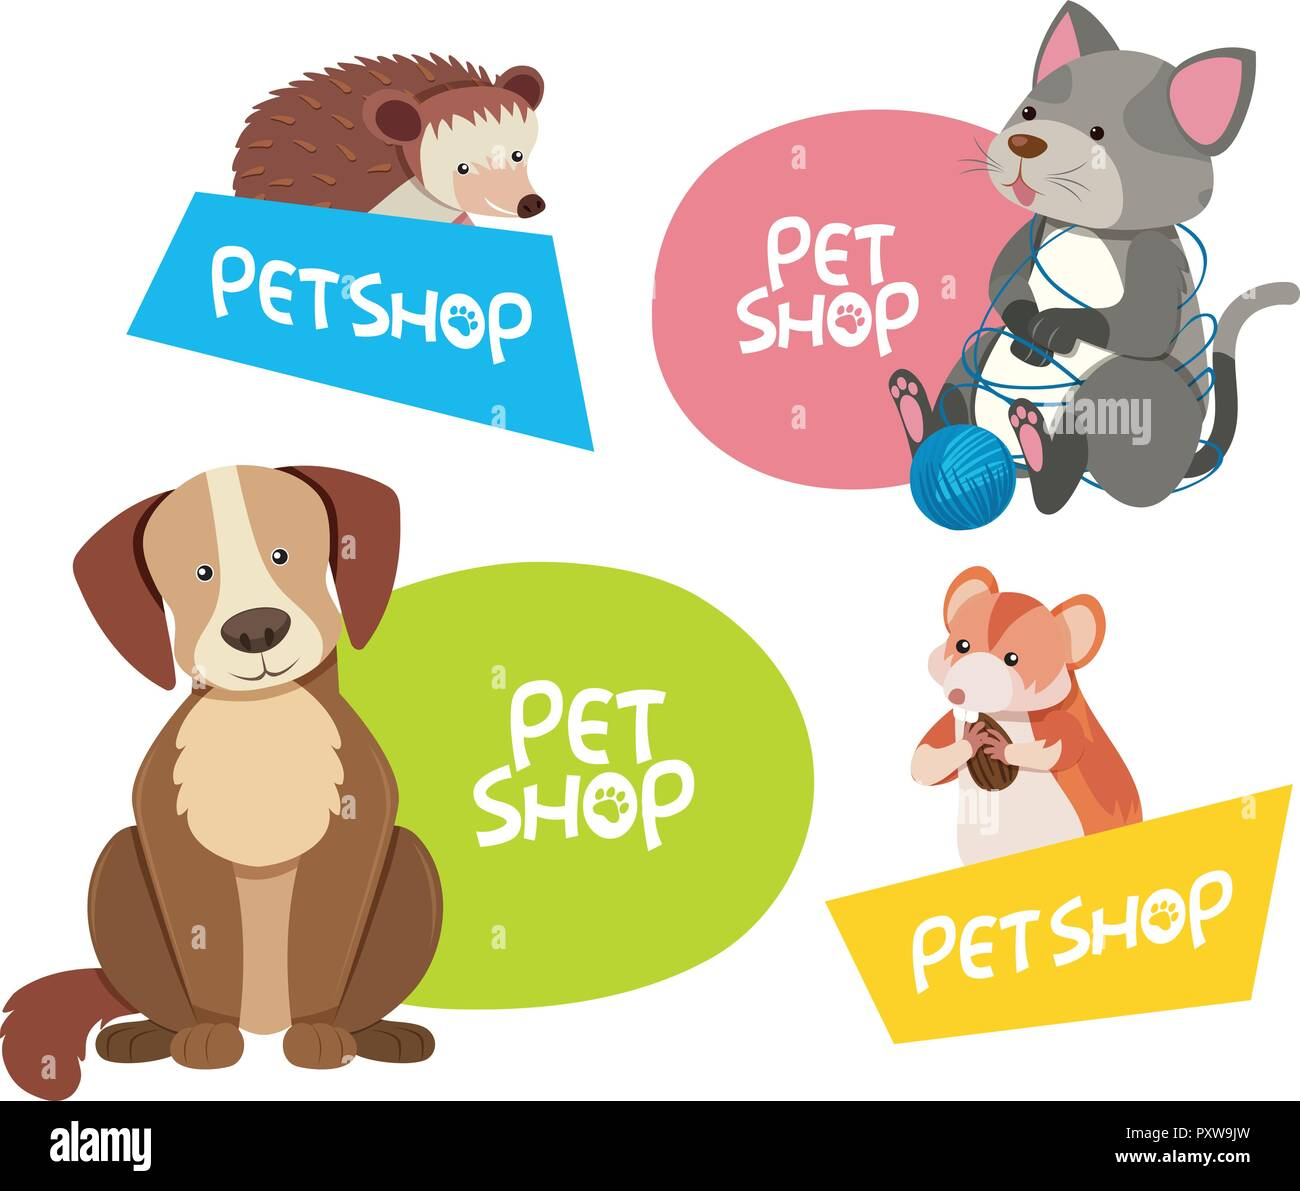 Sticker Design For Different Types Of Pets Illustration Stock Vector Image Art Alamy